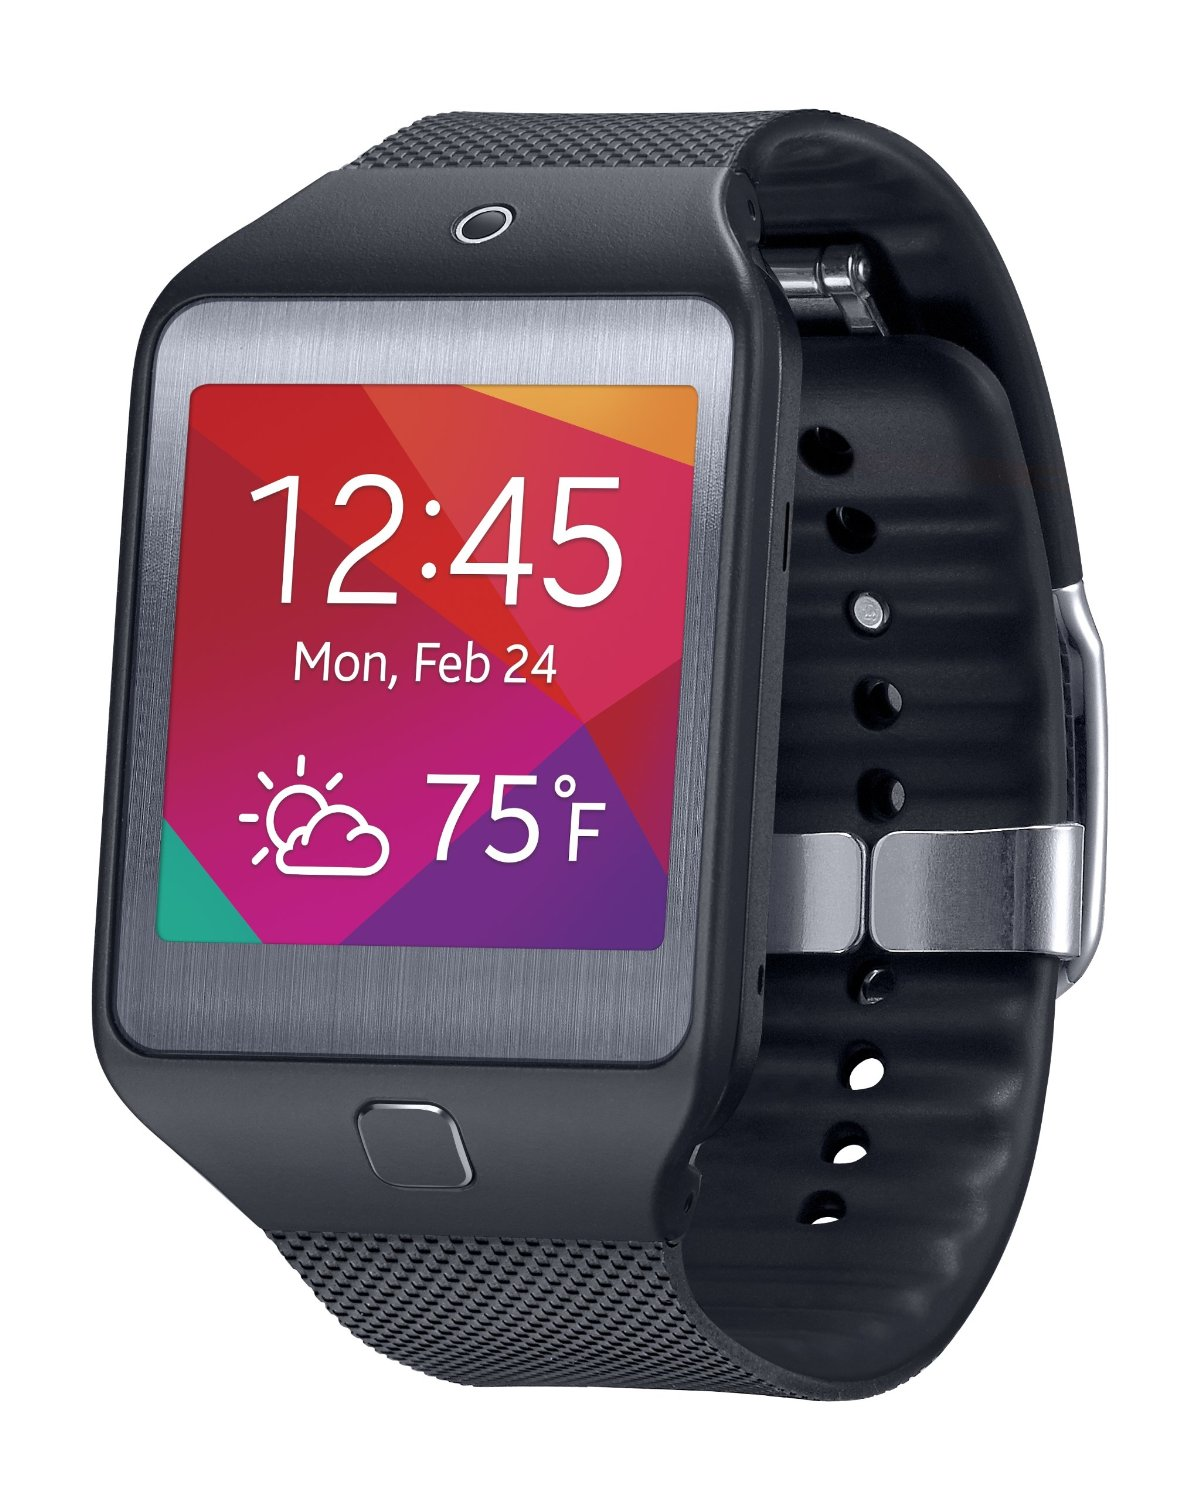 Samsung Gear 2 Smart Watch Review